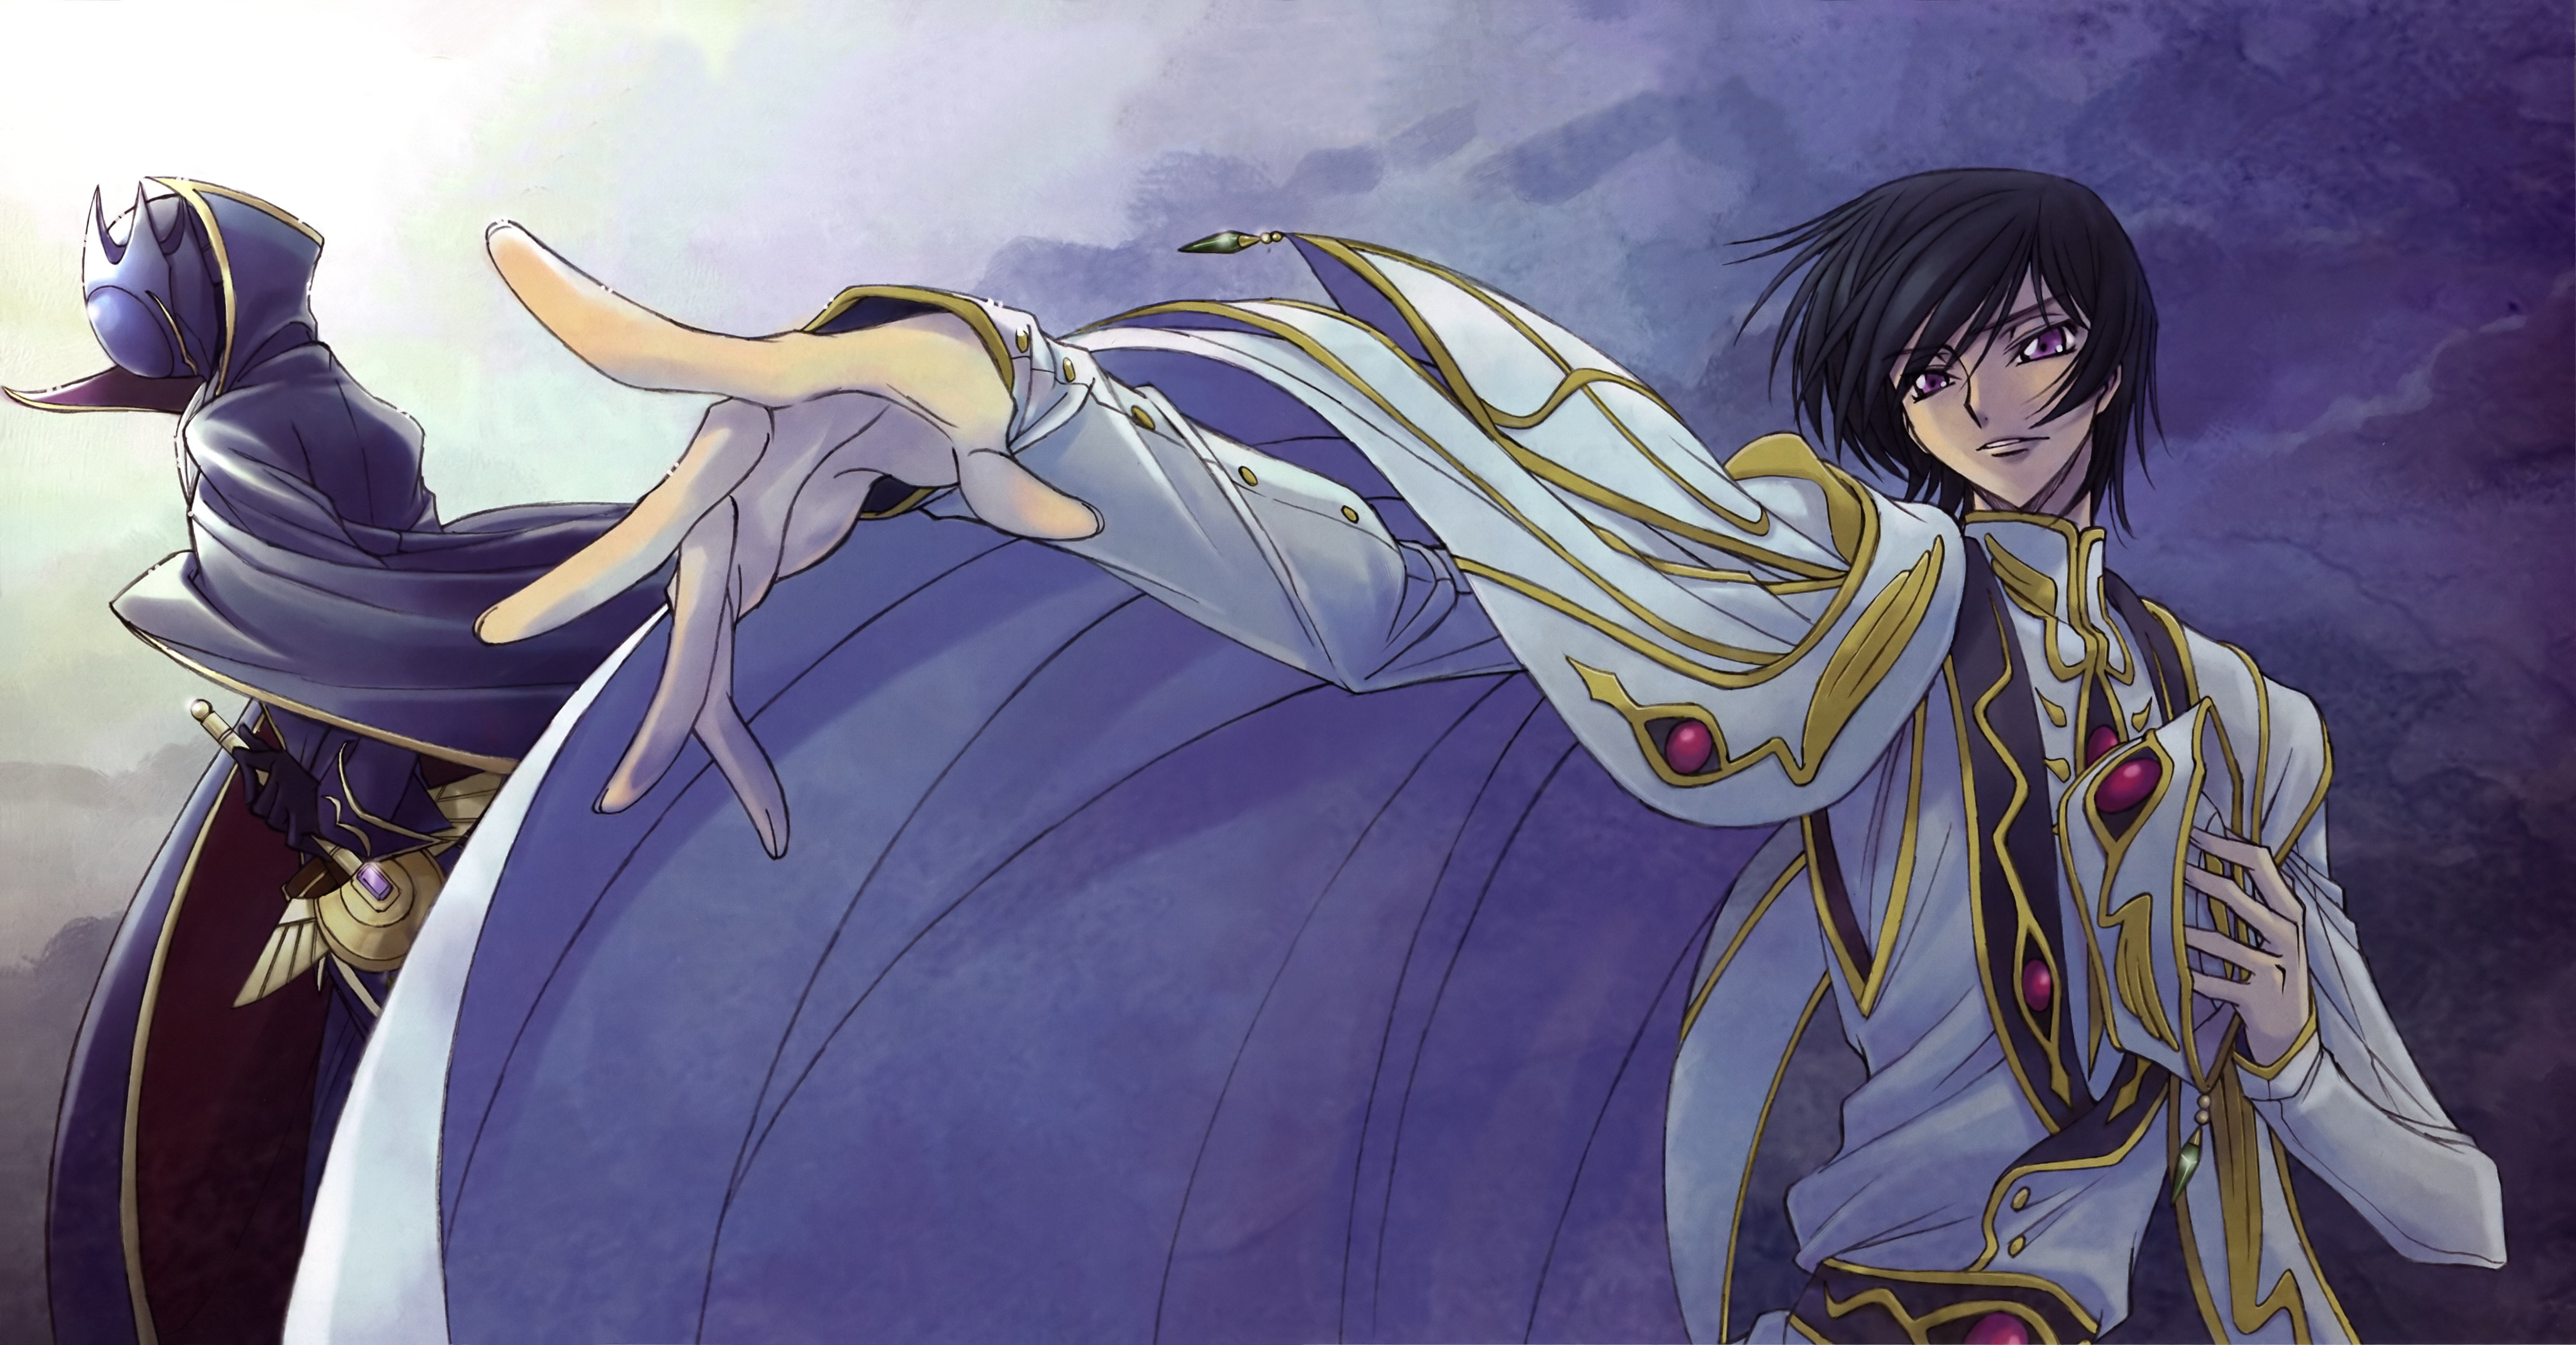 Code Geass Lamperouge Lelouch Wallpaper 5769x3013 337240